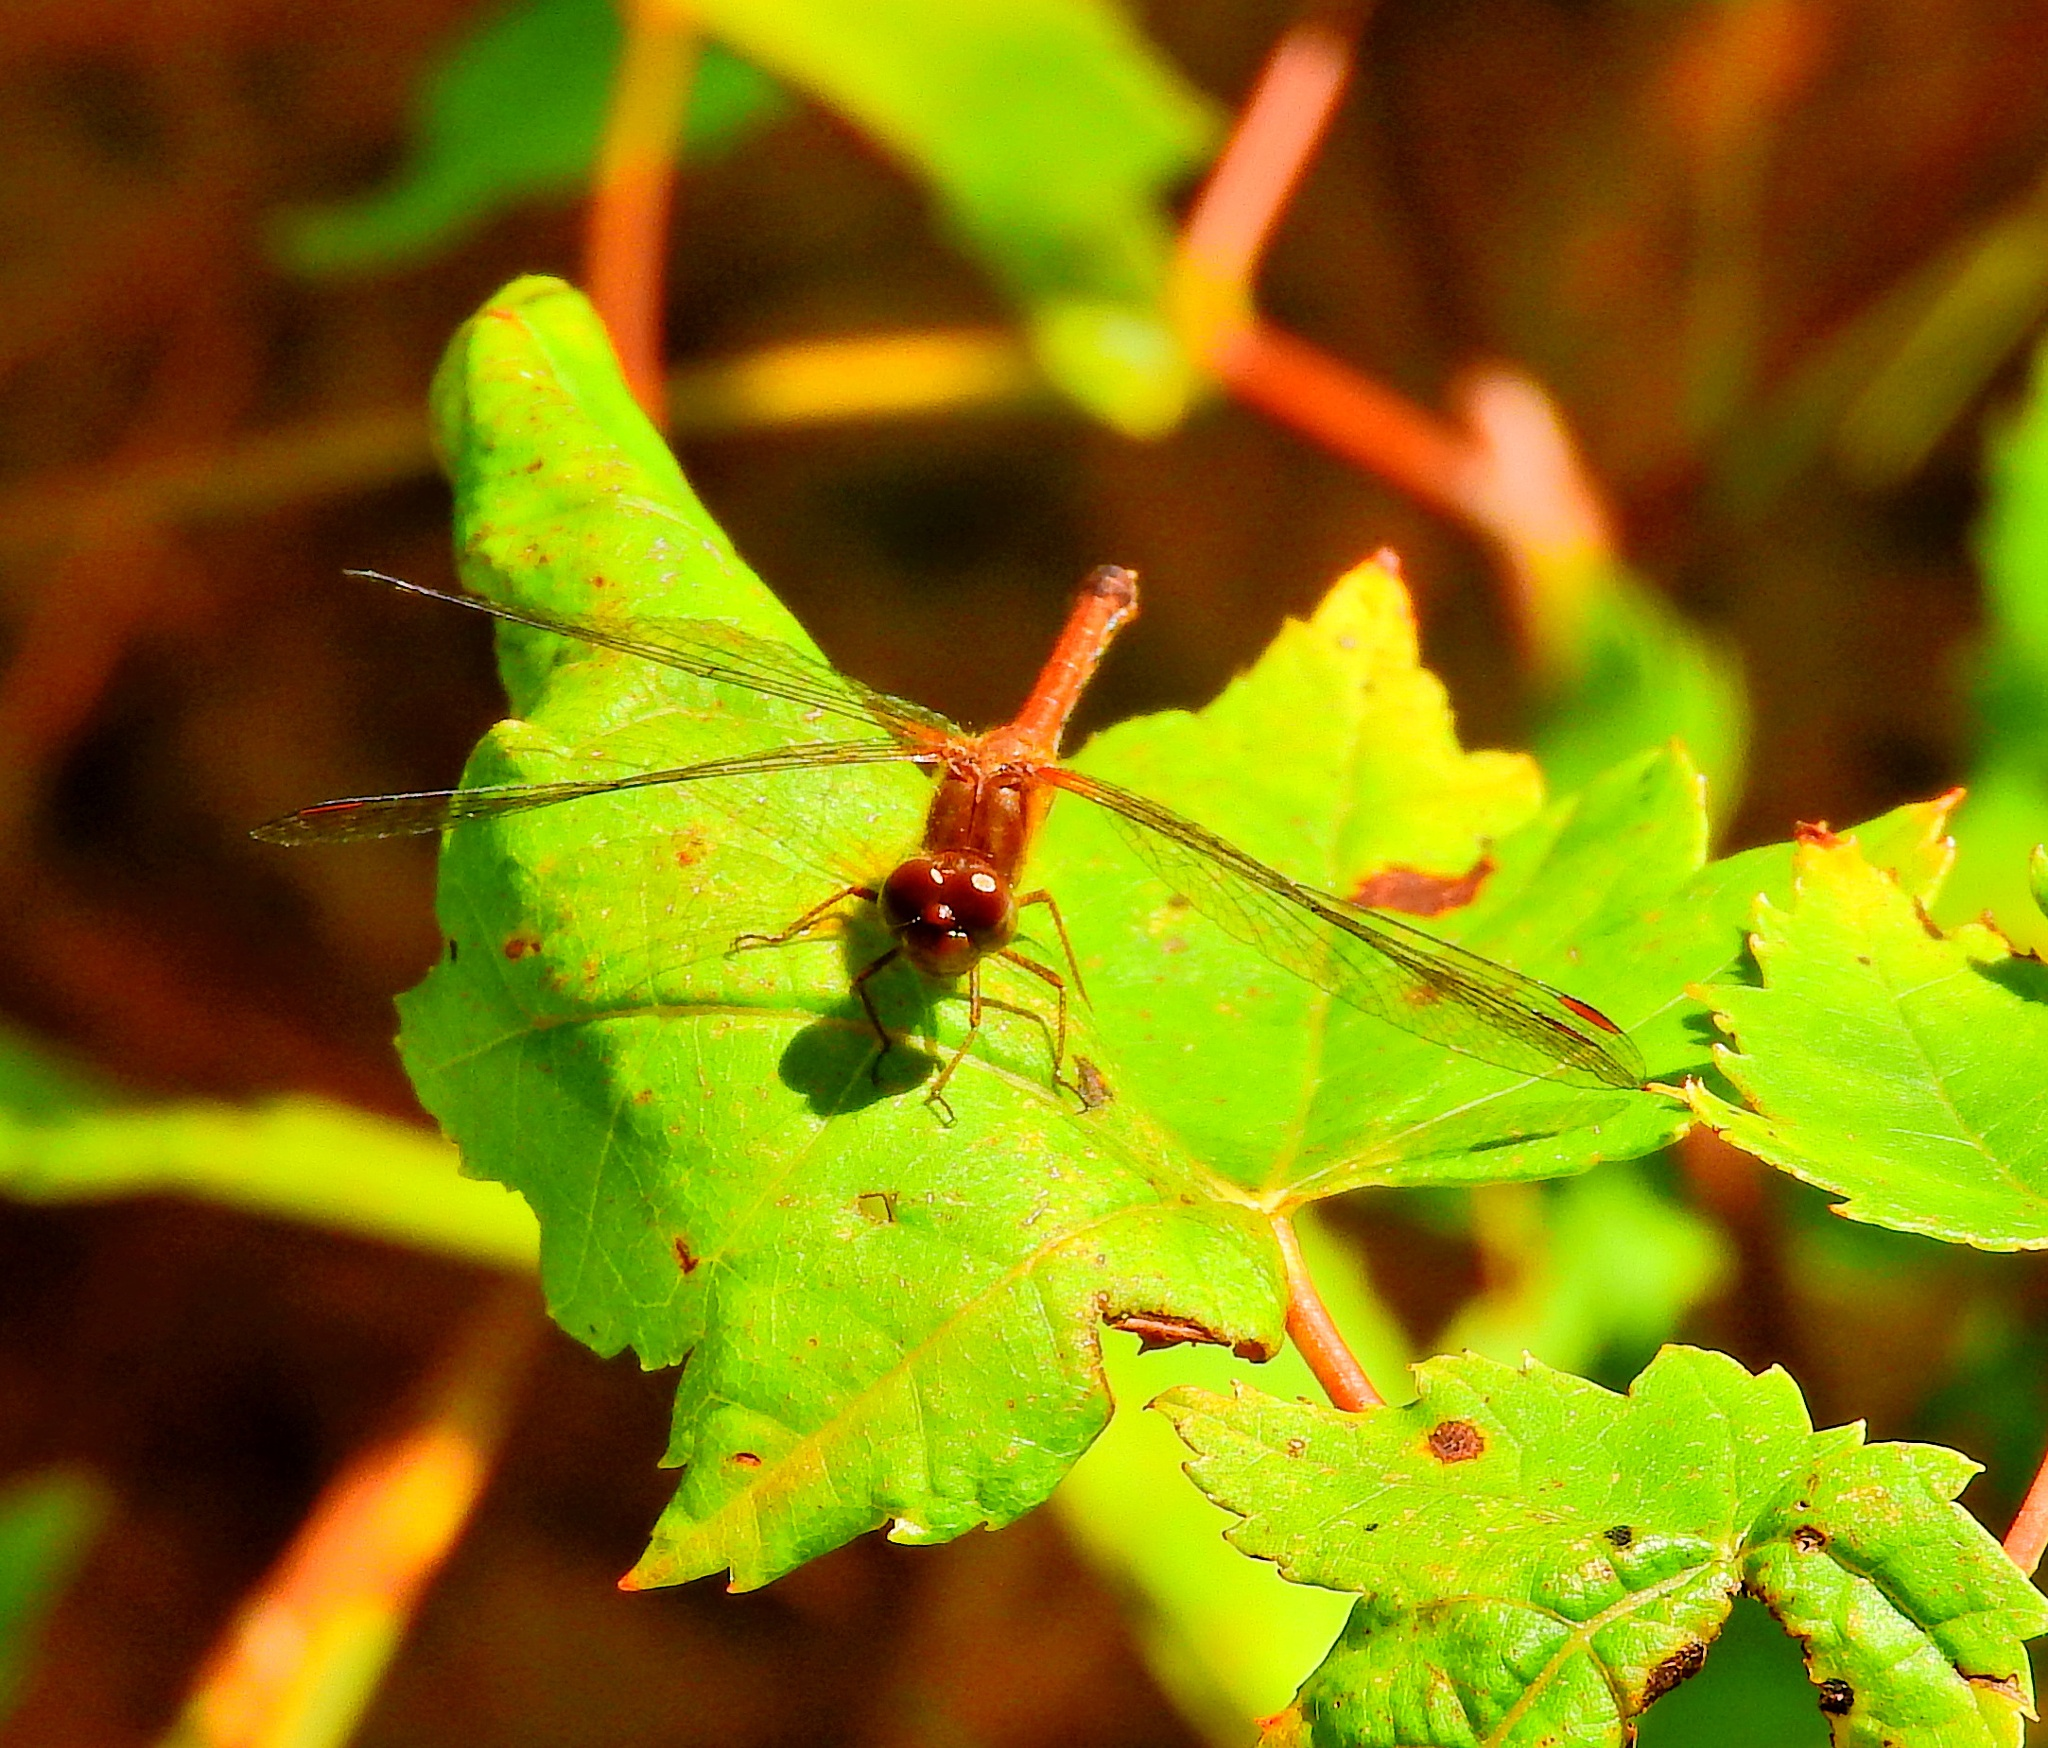 Ruby Meadowhawk Dragonfly by paulette.king